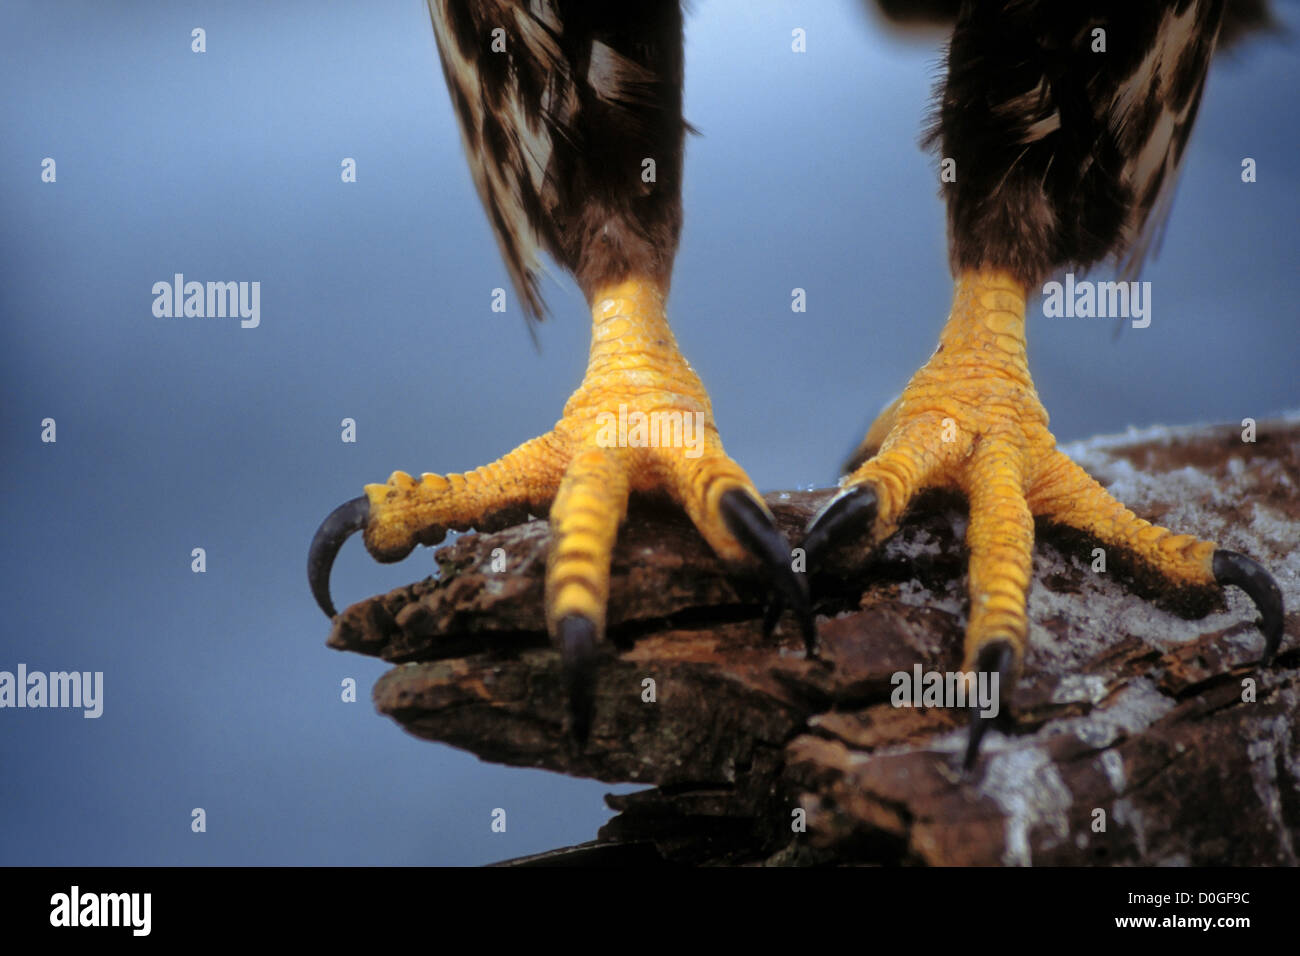 Talons of a Bald Eagle - Stock Image